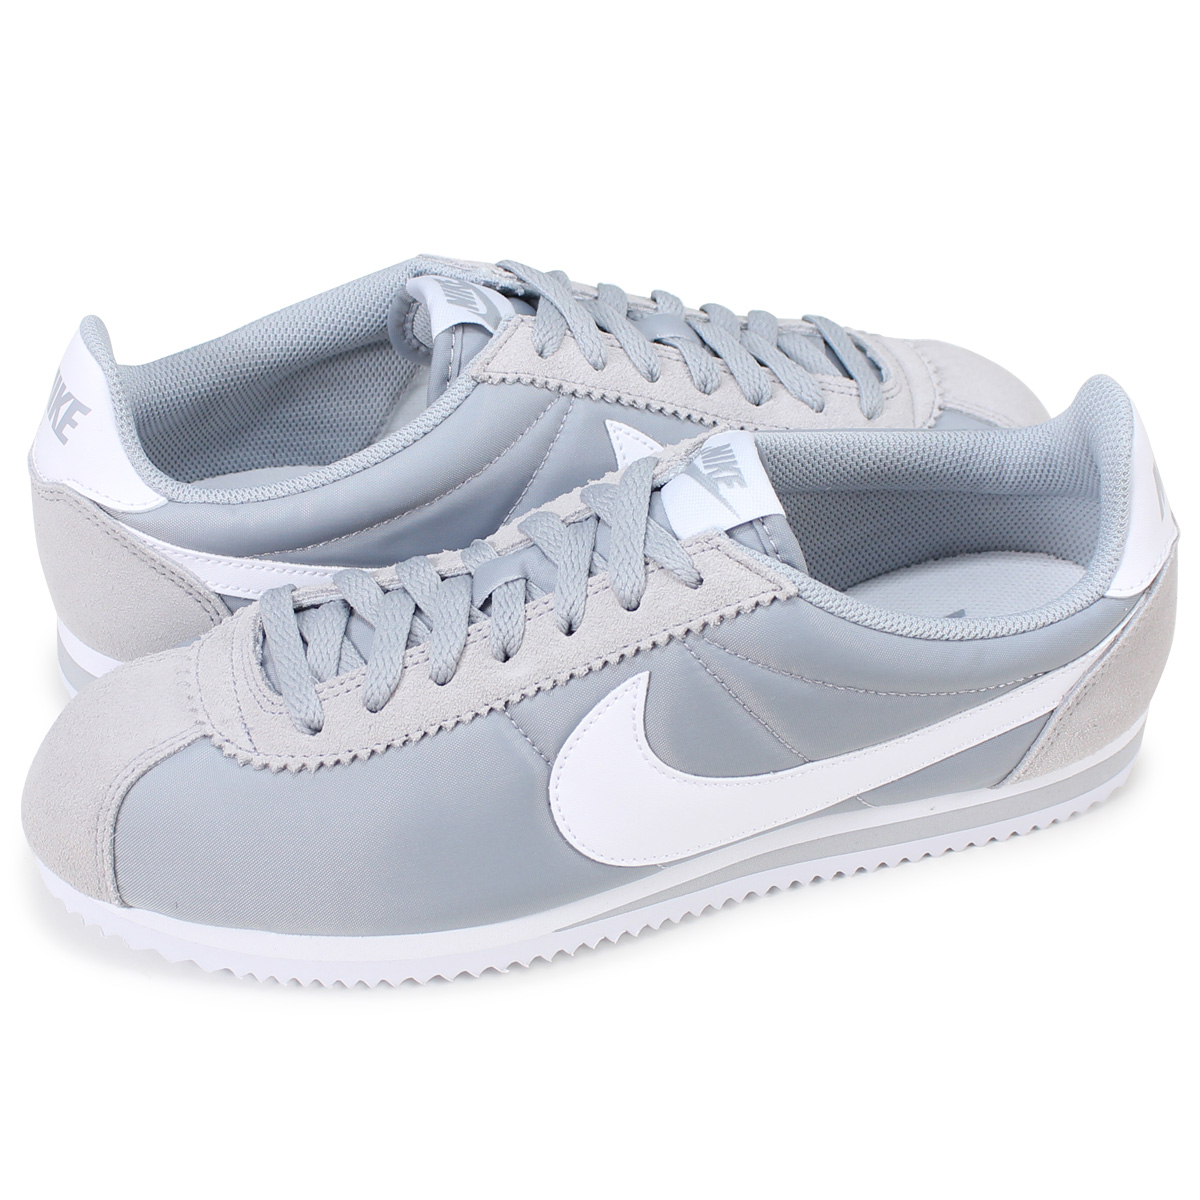 outlet store 4b573 7674f NIKE Nike classic Cortez sneaker CLASSIC CORTEZ NYLON 807472-010 Wolf grey  men's women's shoes grey